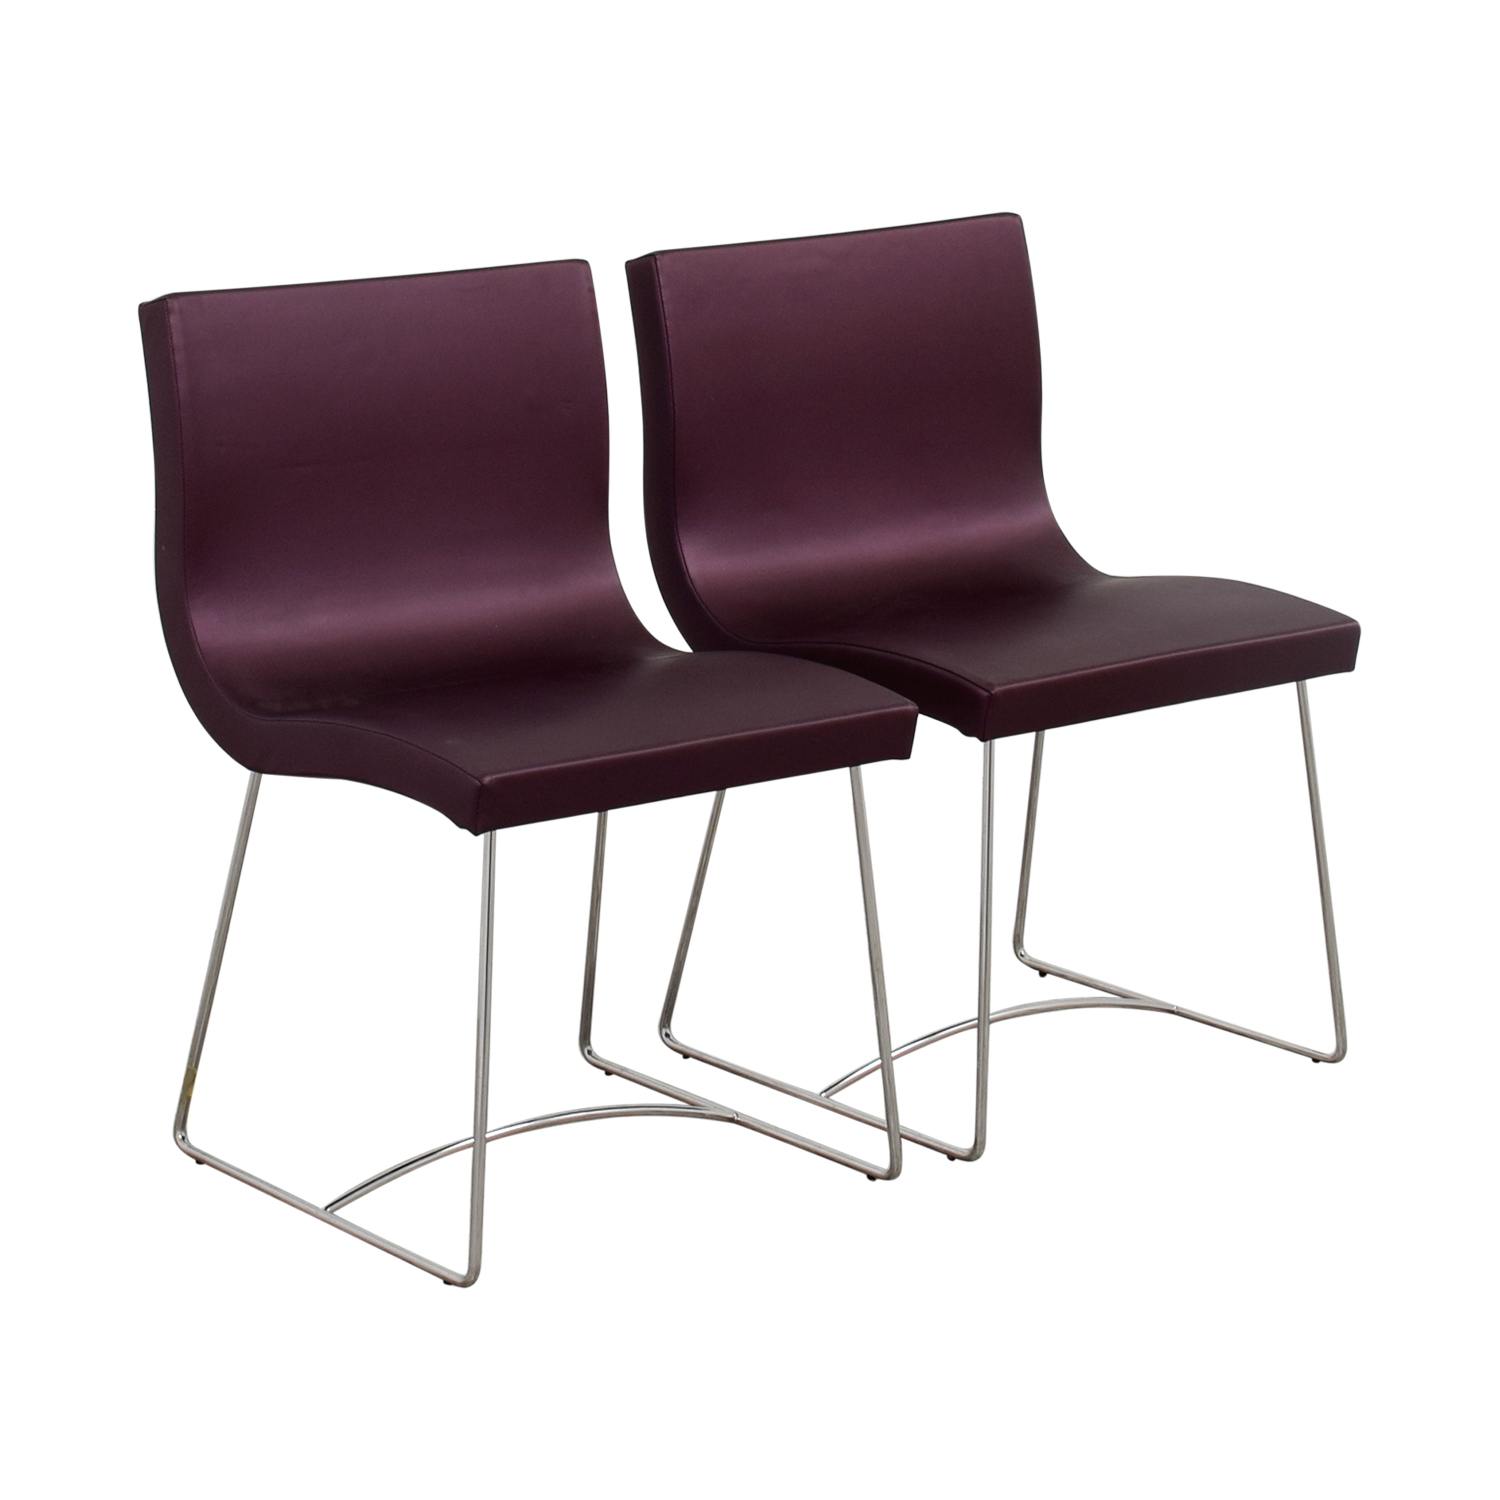 Beau ... Ligne Roset Purple Dining Chairs / Dining Chairs ...